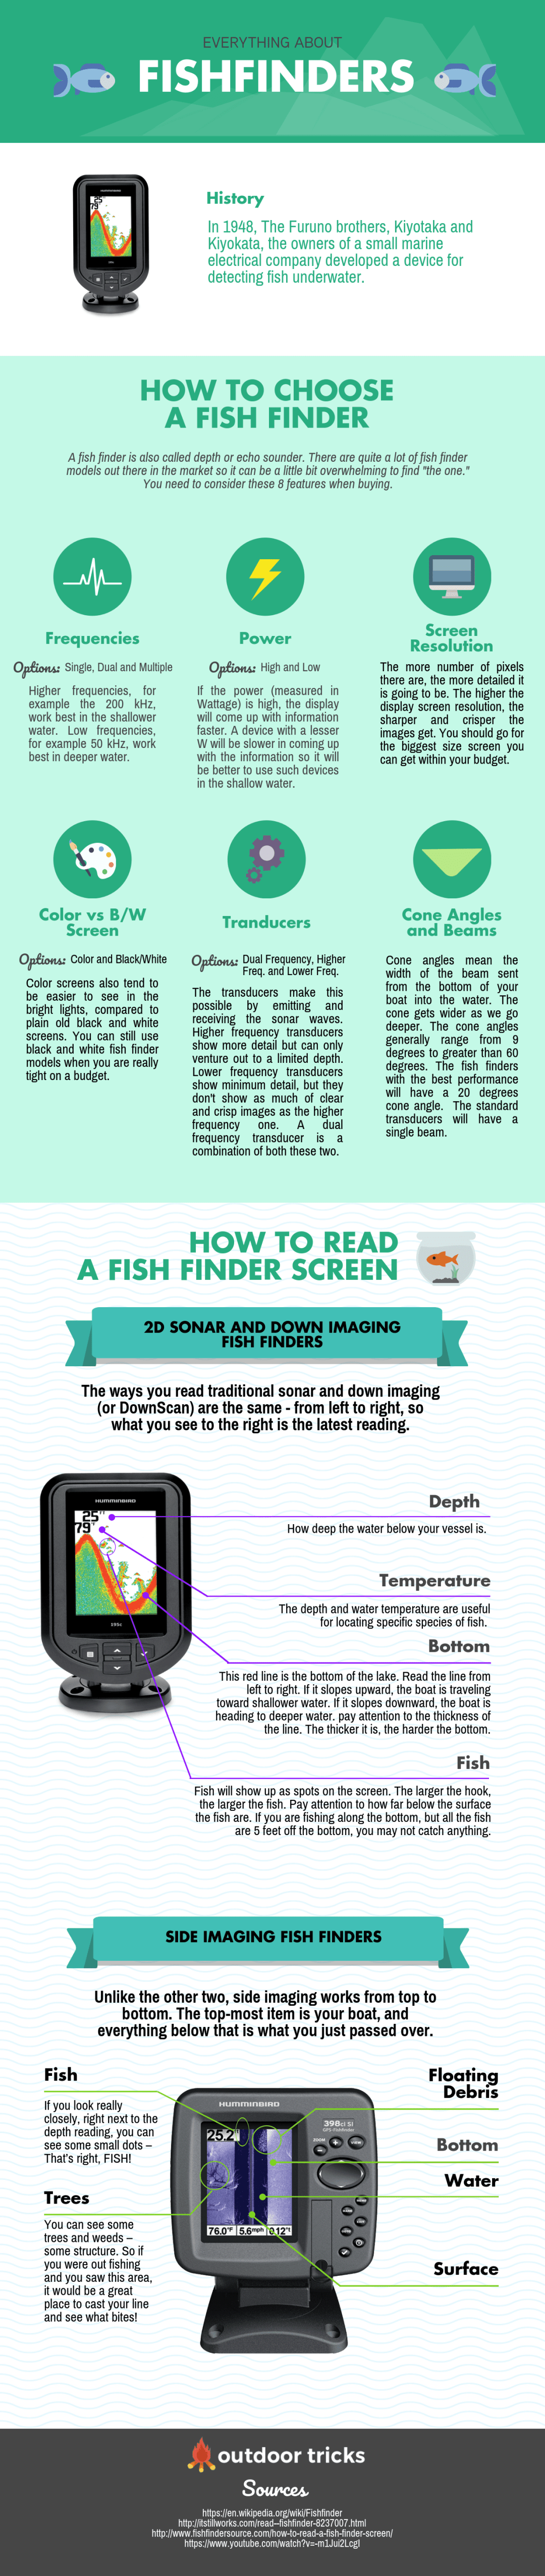 best-fish-finder-for-your-money-infographic